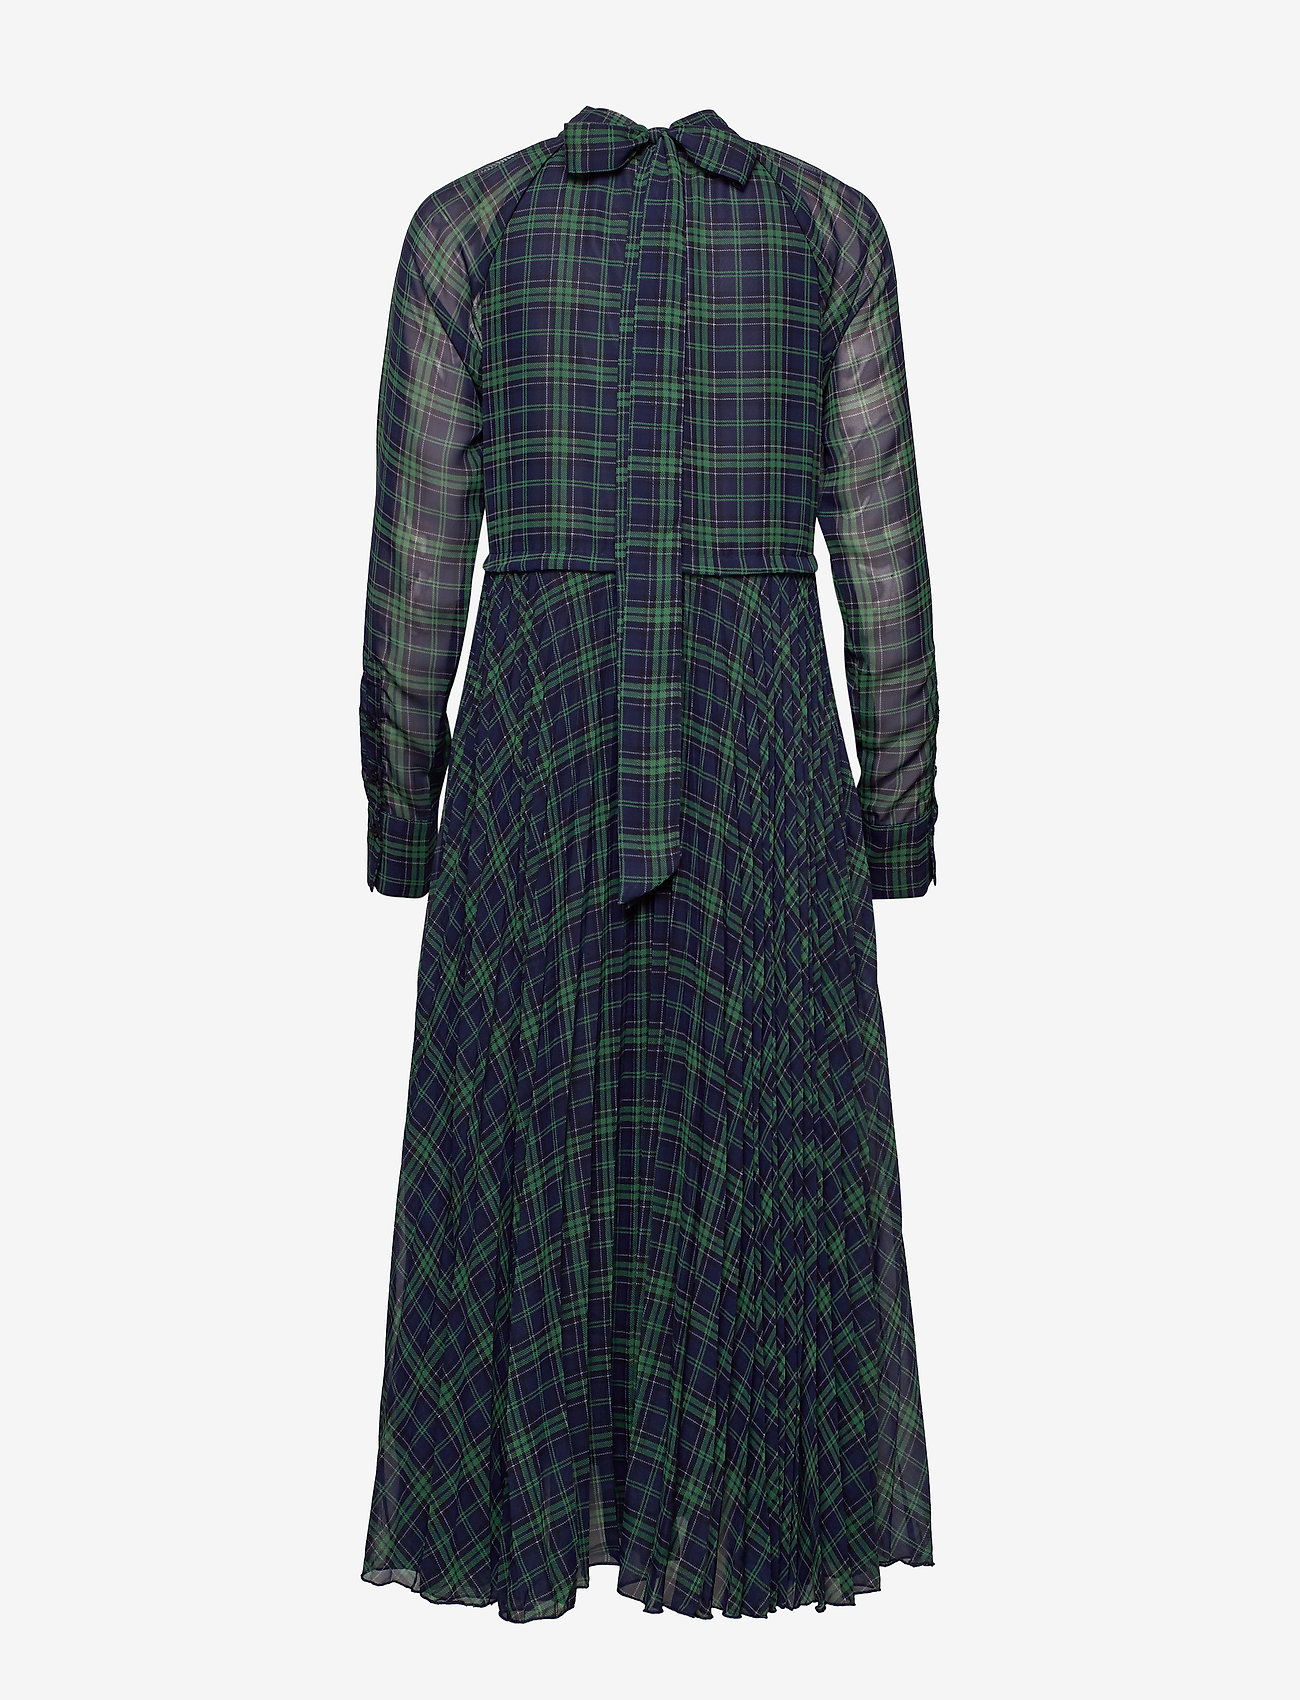 Nima Long Dress (Tartan) (1619.40 kr) - Birgitte Herskind